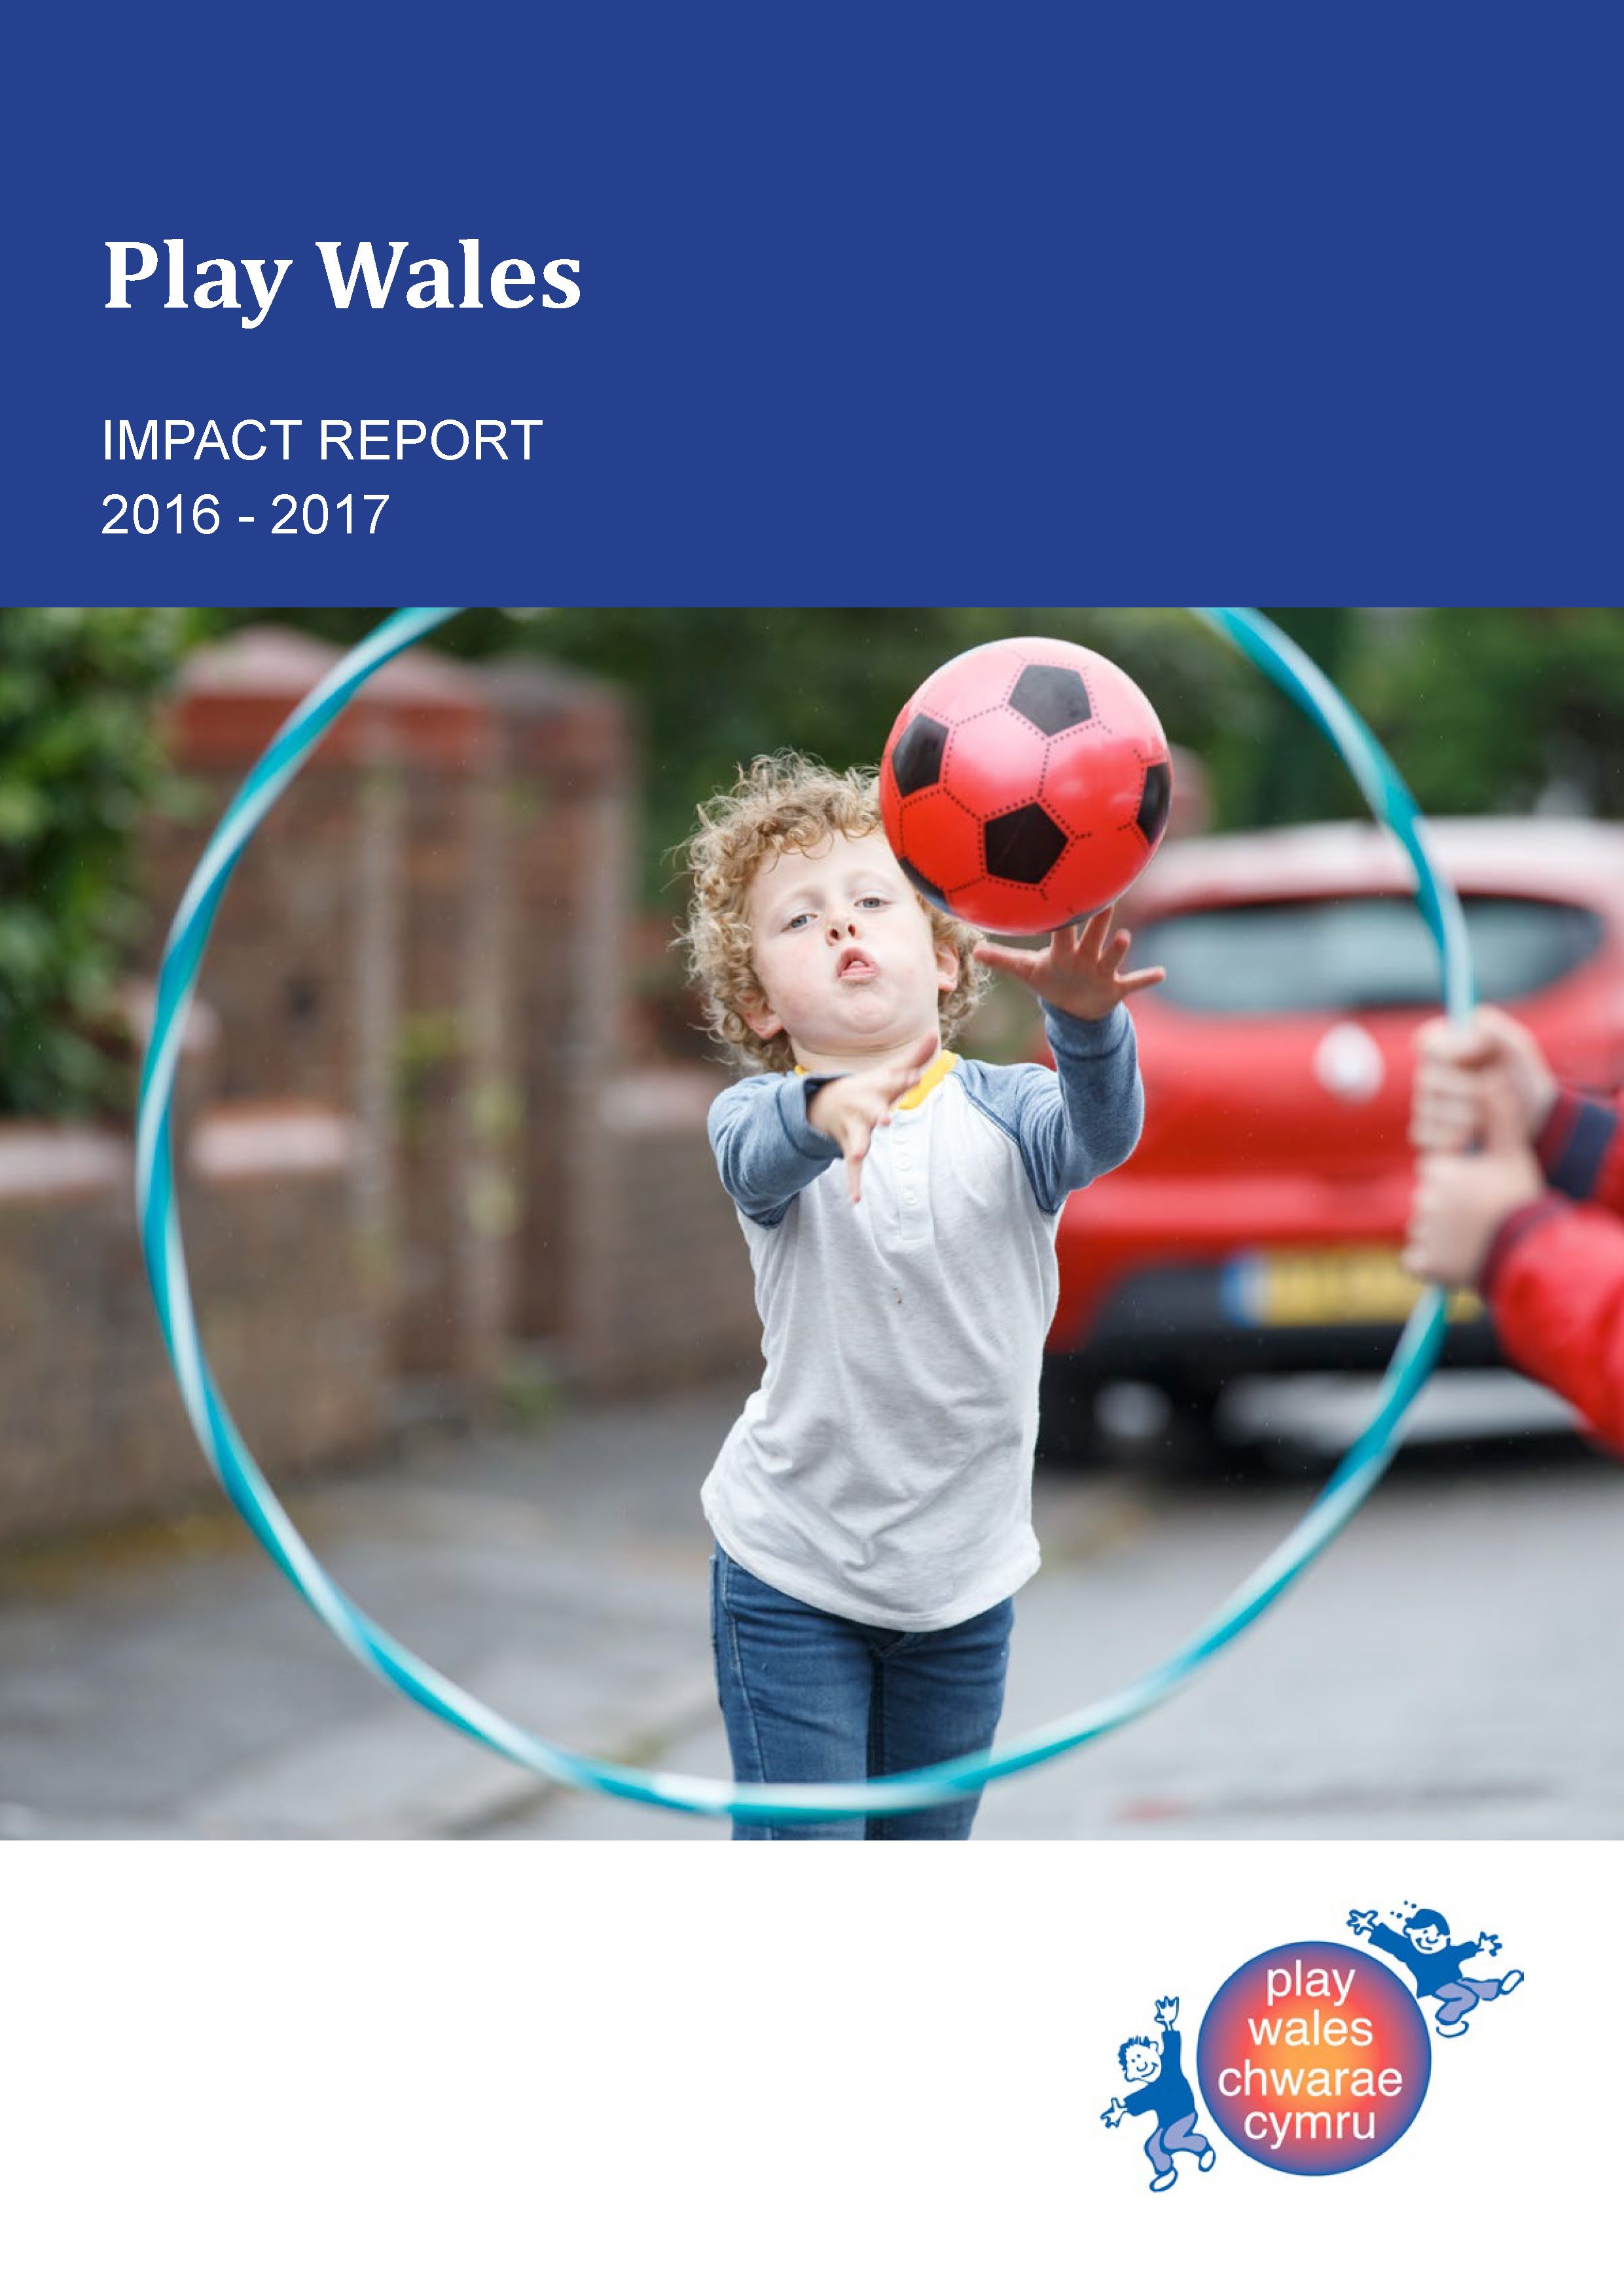 Image for Play Wales impact report 2016 – 2017